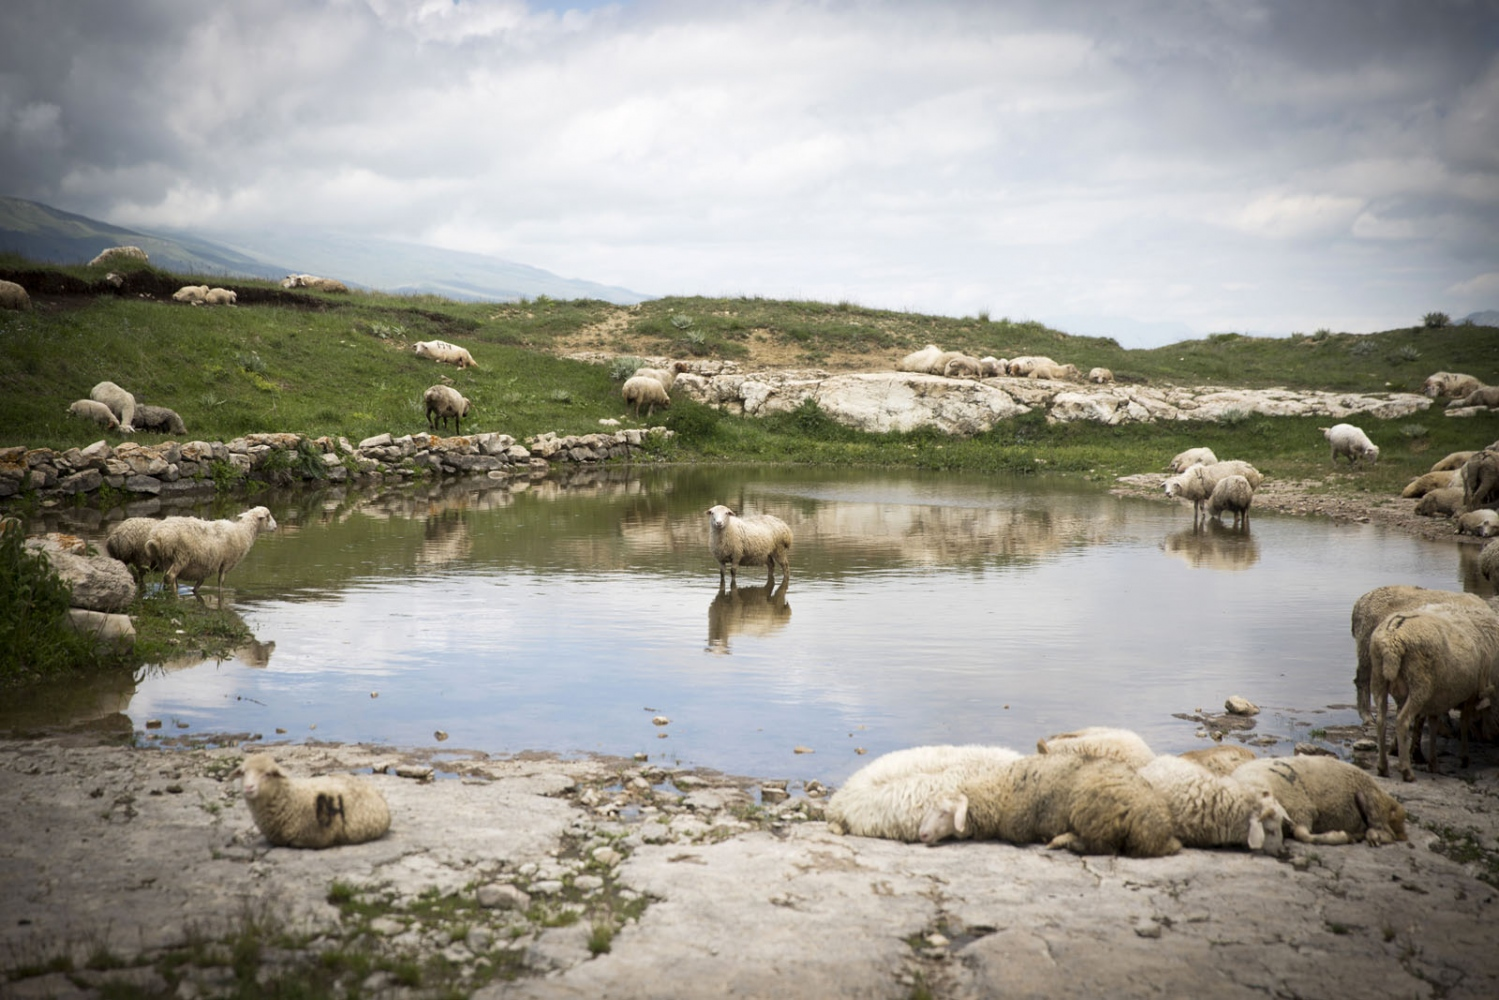 A flock of sheep rest near a natural pond on top of a remote plateau.